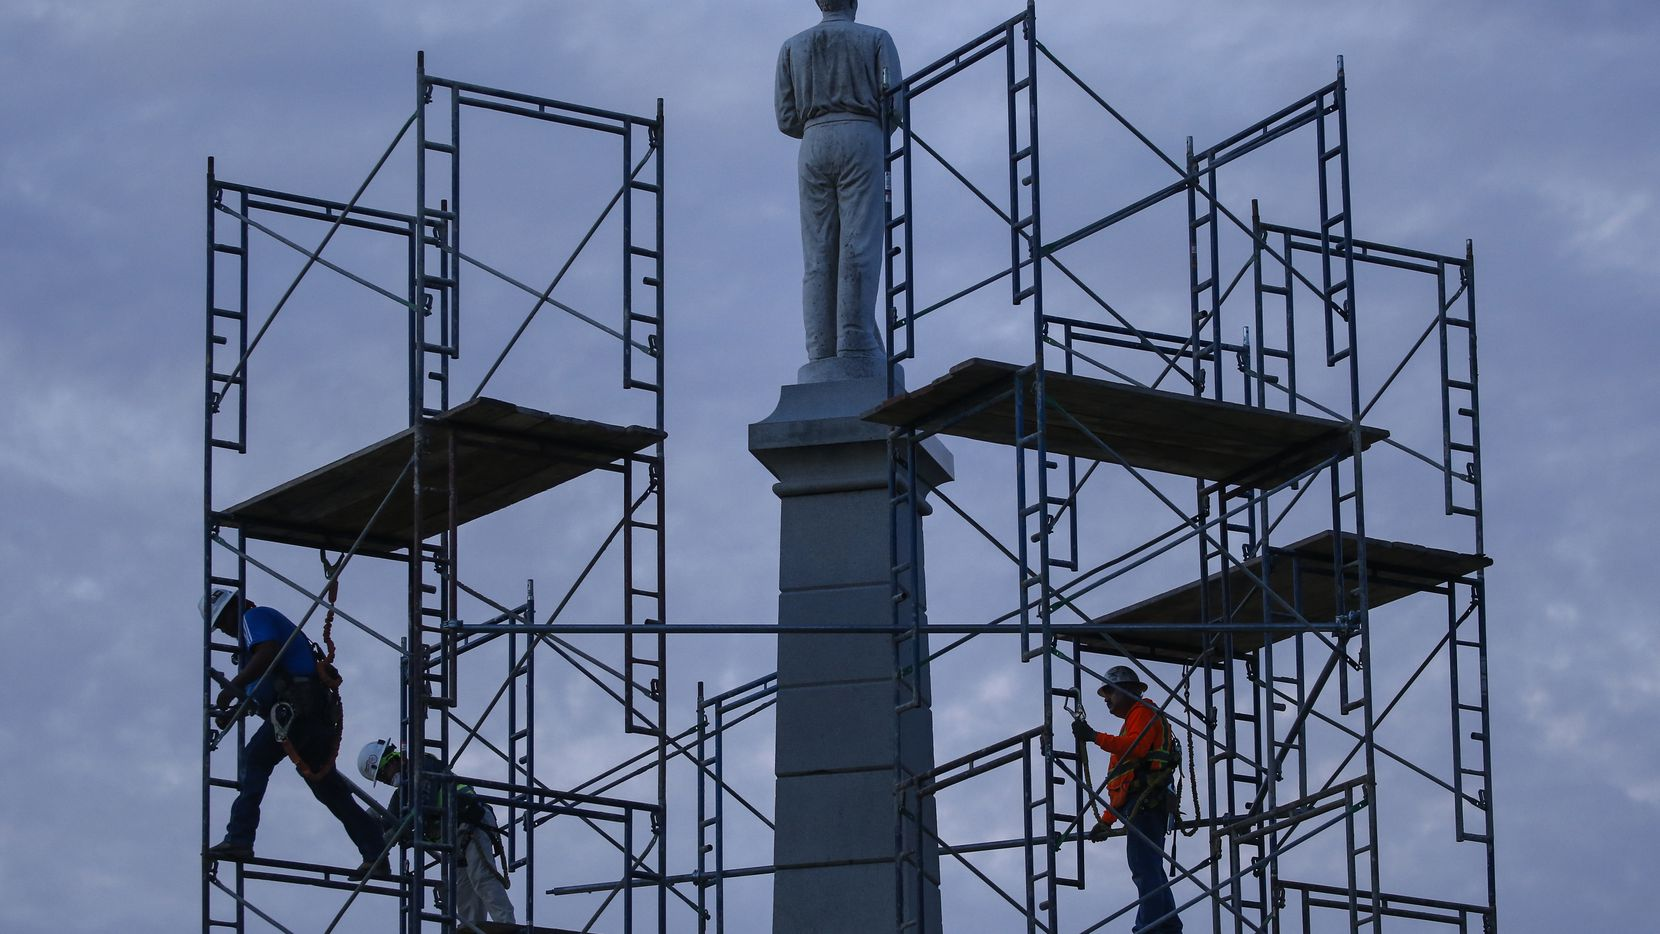 In this June 24, 2020, file photo, construction workers remove the final soldier statue, which sat atop The Confederate War Memorial in downtown Dallas. The Confederate battle flag is losing its place of official prominence in the South 155 years after the end of the Civil War and some Southern localities have removed memorials and statues dedicated to the Confederate cause.